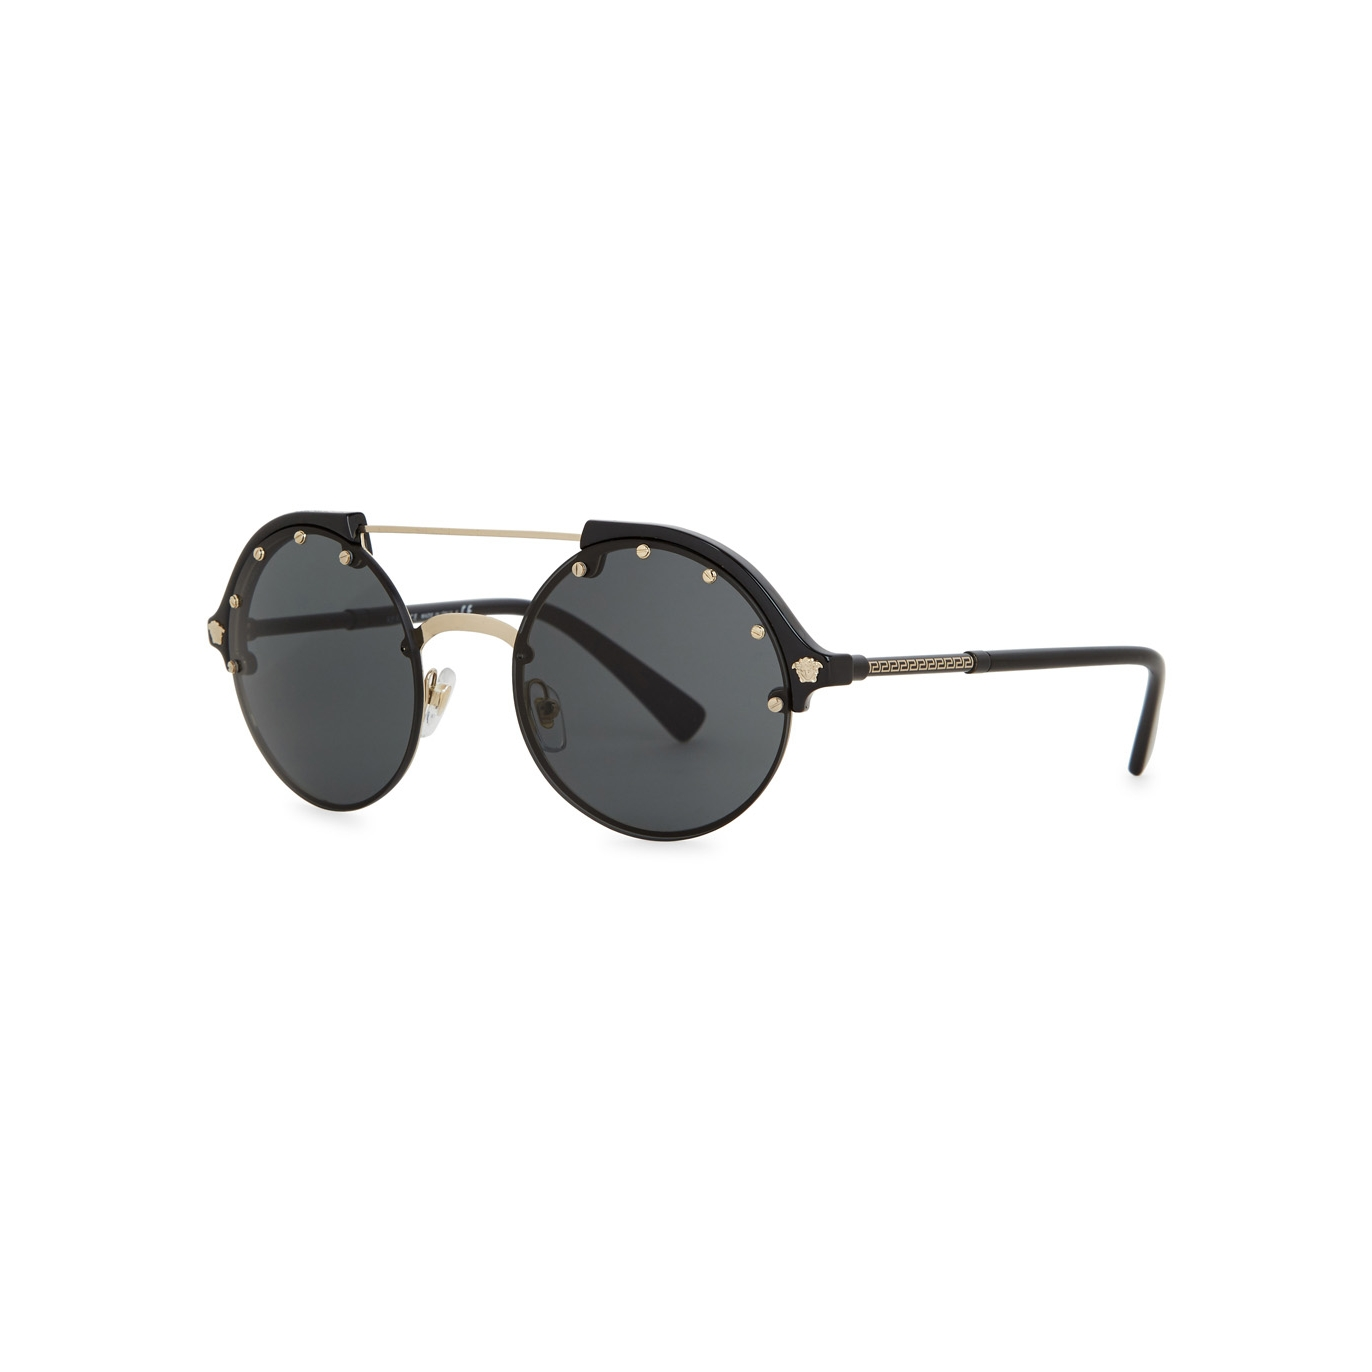 97e3cd18380e Versace Black round-frame sunglasses - Harvey Nichols